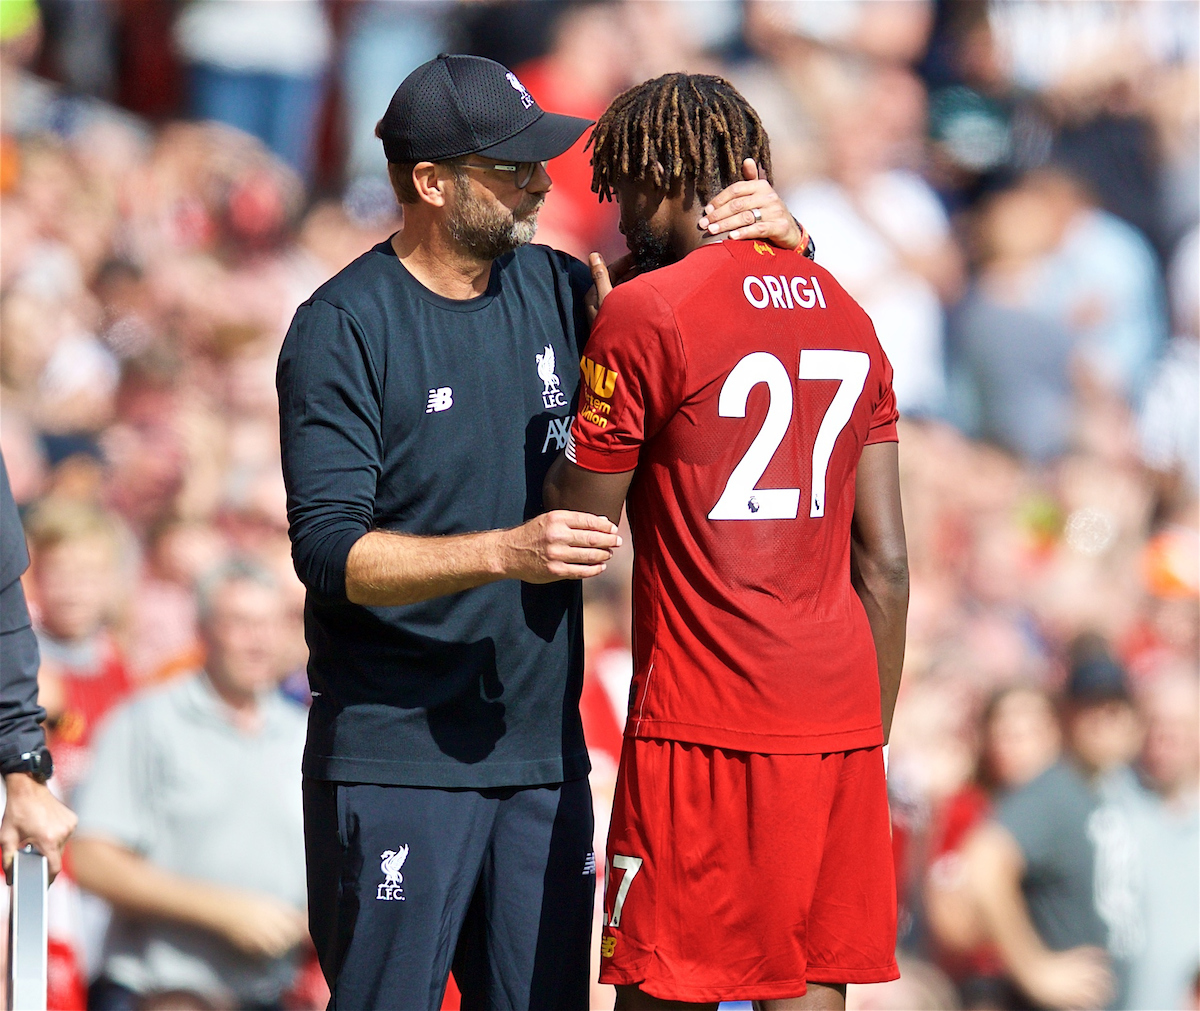 LIVERPOOL, ENGLAND - Saturday, September 14, 2019: Liverpool's manager Jürgen Klopp speaks with Divock Origi as he is substituted with an injury during the FA Premier League match between Liverpool FC and Newcastle United FC at Anfield. (Pic by David Rawcliffe/Propaganda)